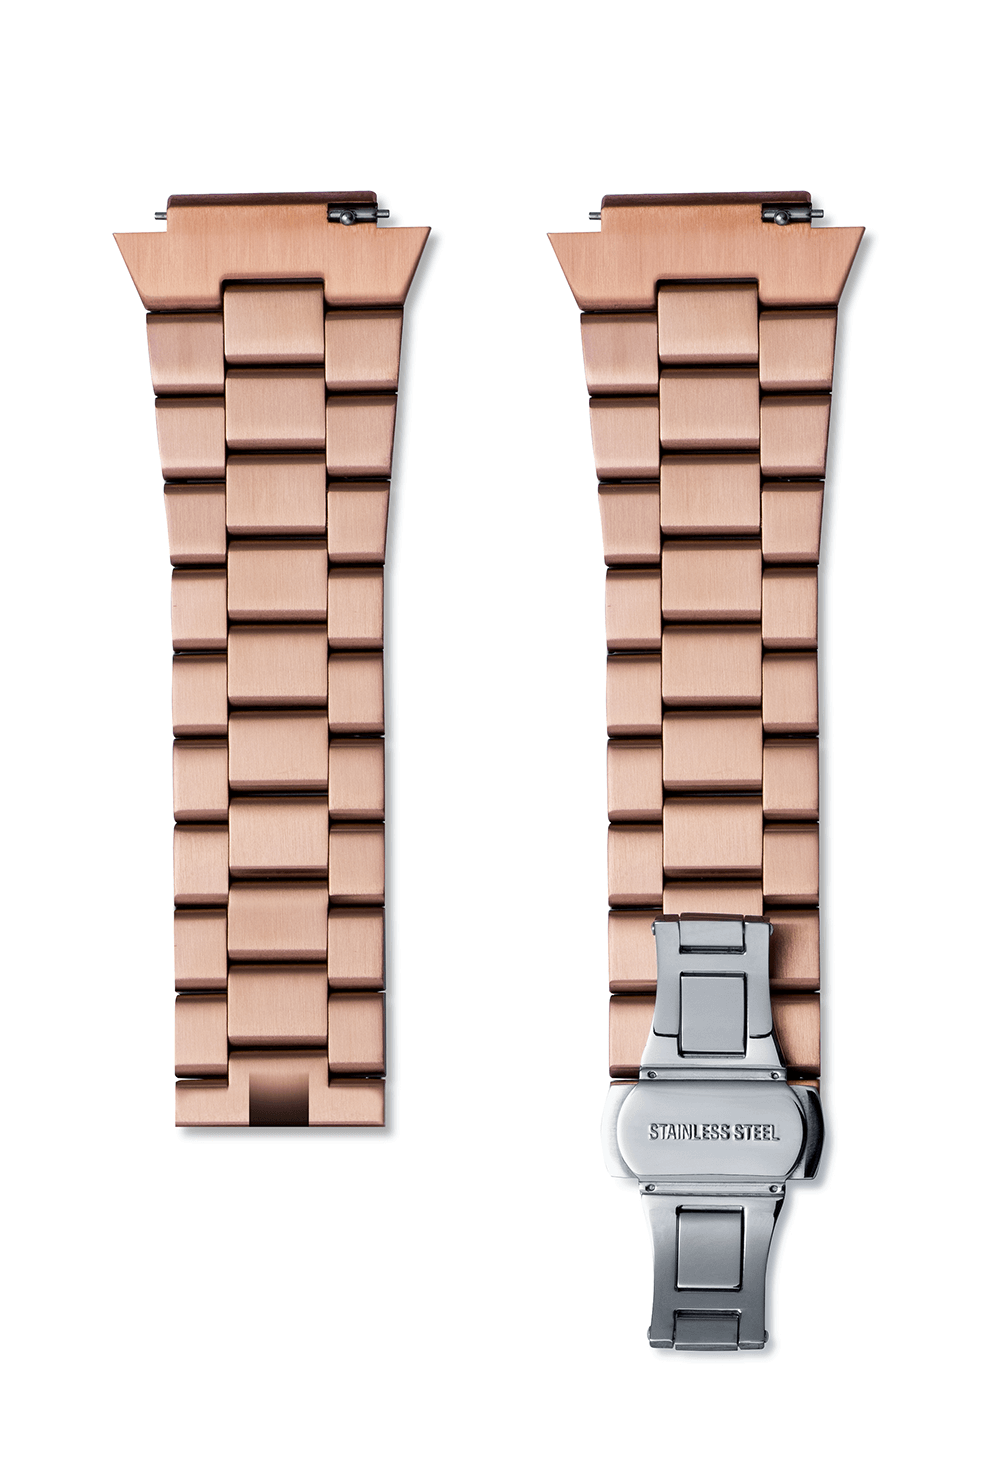 Signature/Star Dust Steel Watchband - Rose Gold